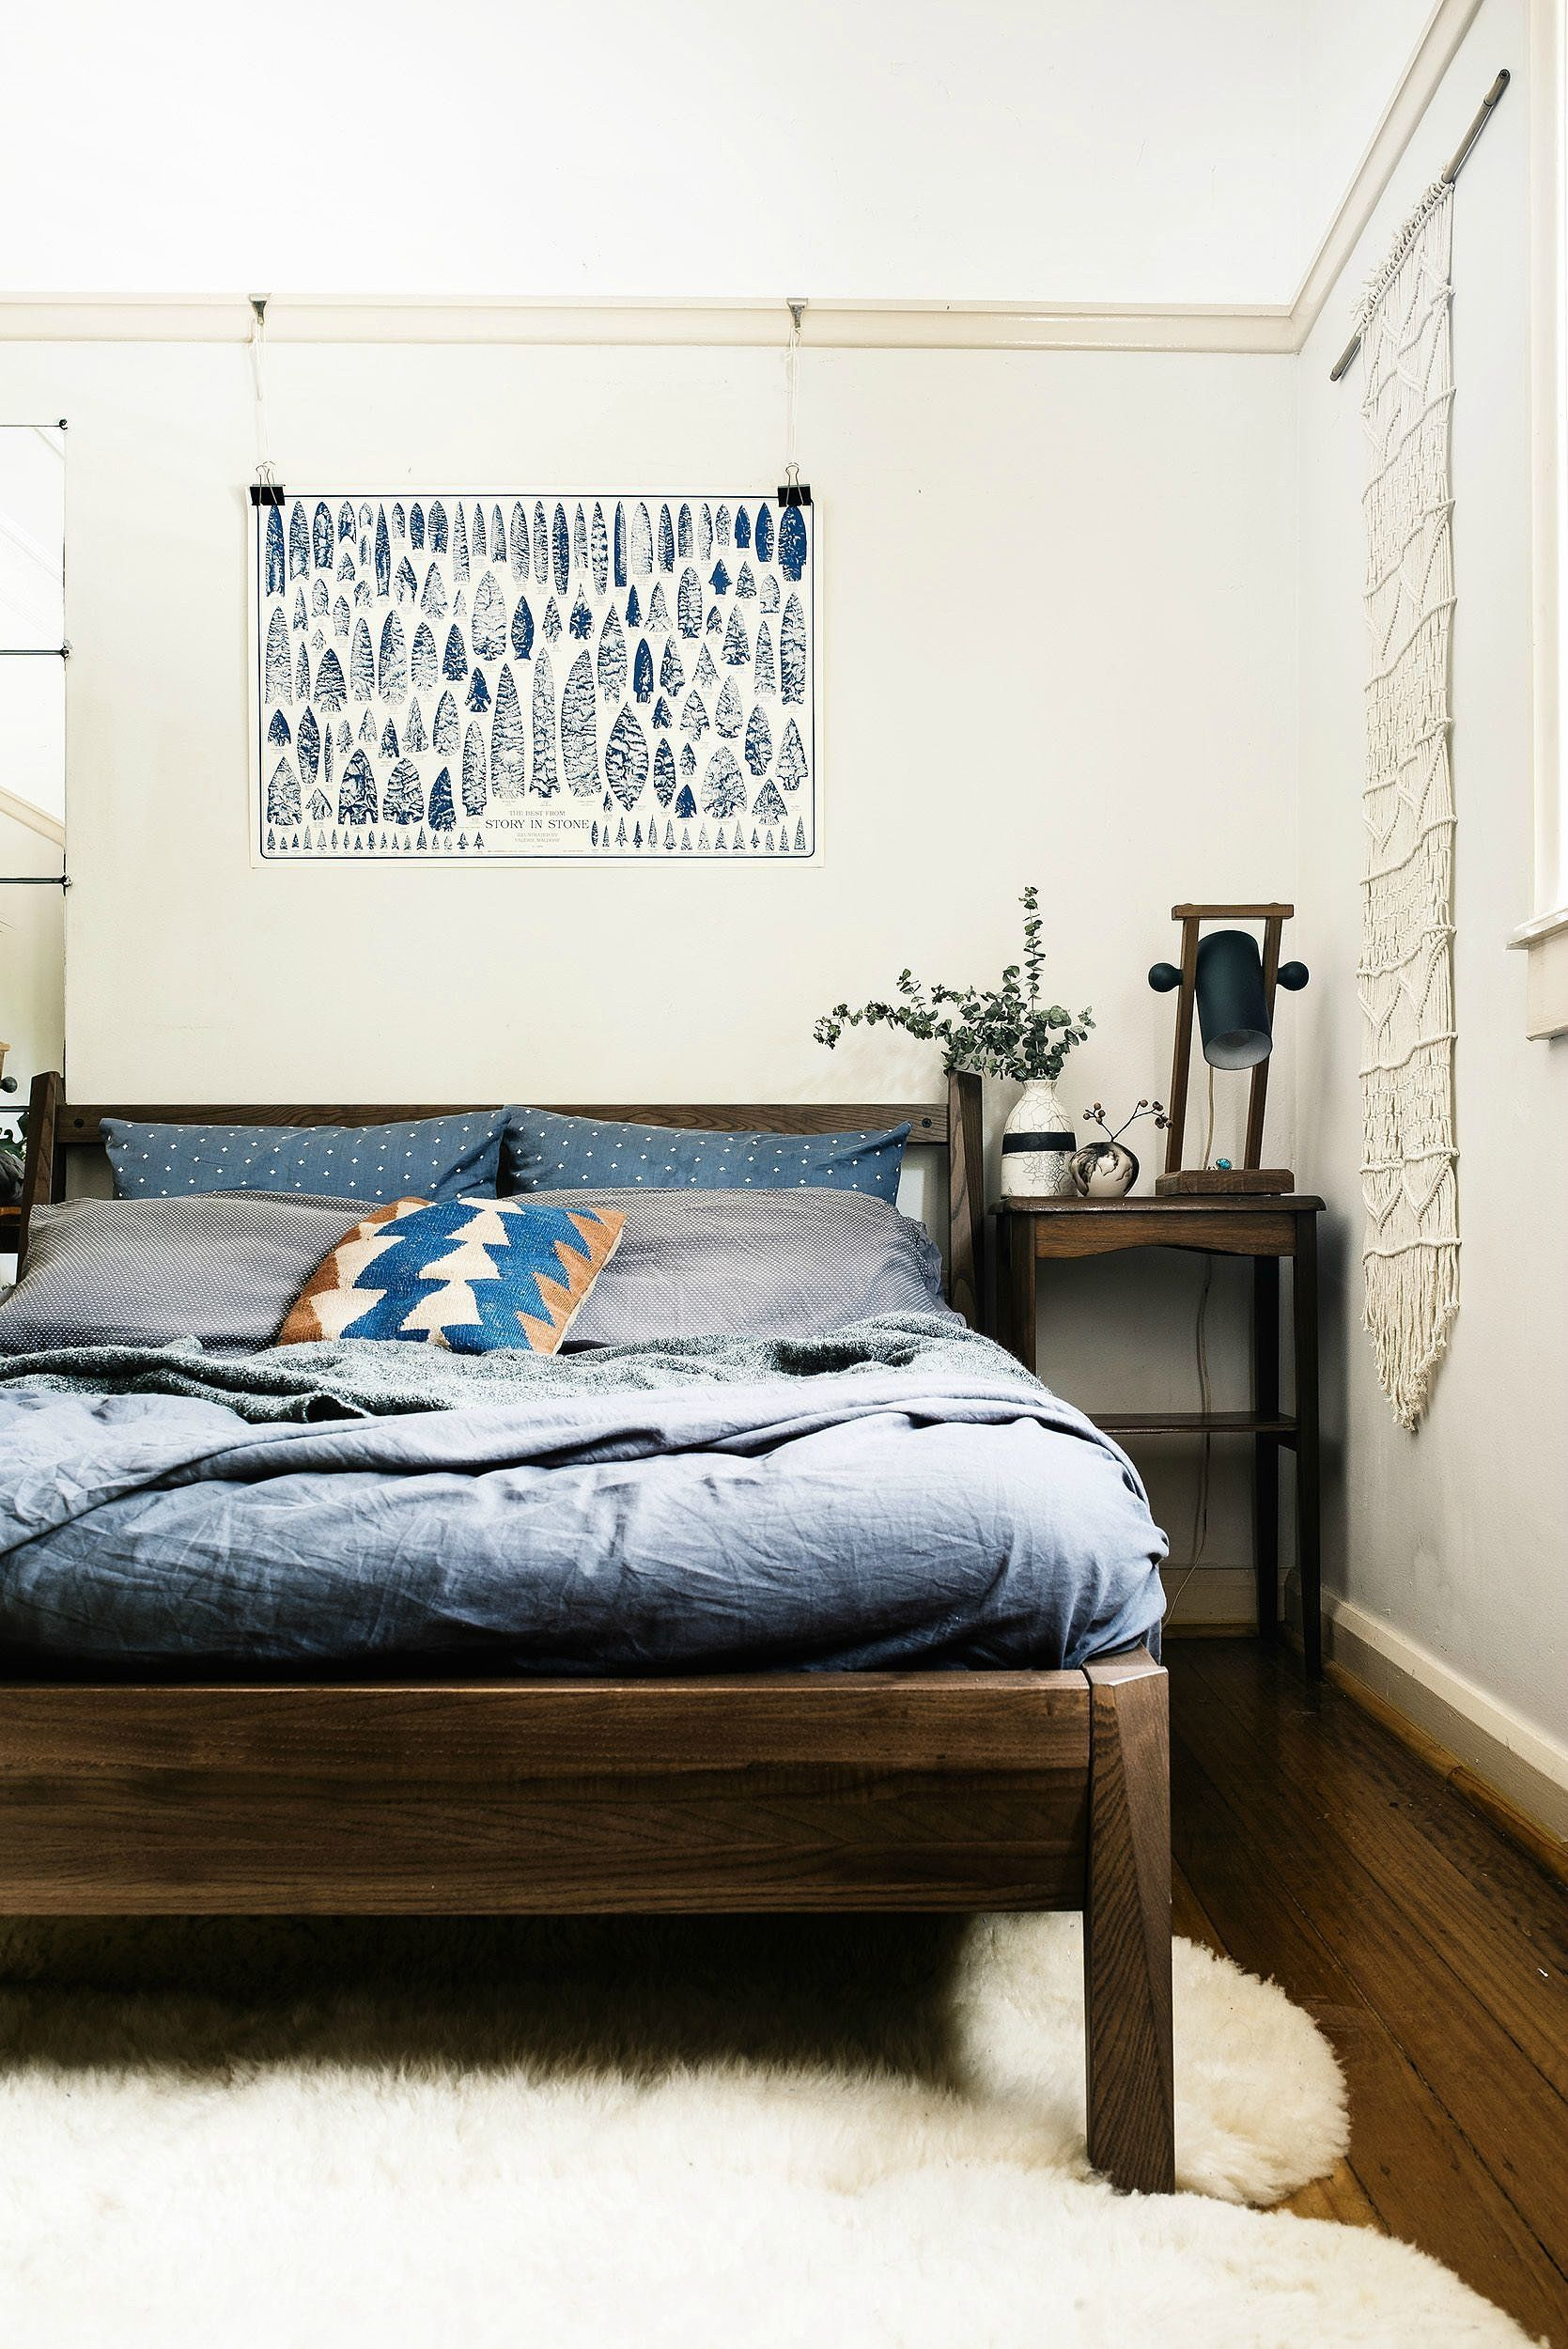 See Why Reddit Is Freaking Out Over This Apartment Wooden Bed Bedroom Design Home Decor